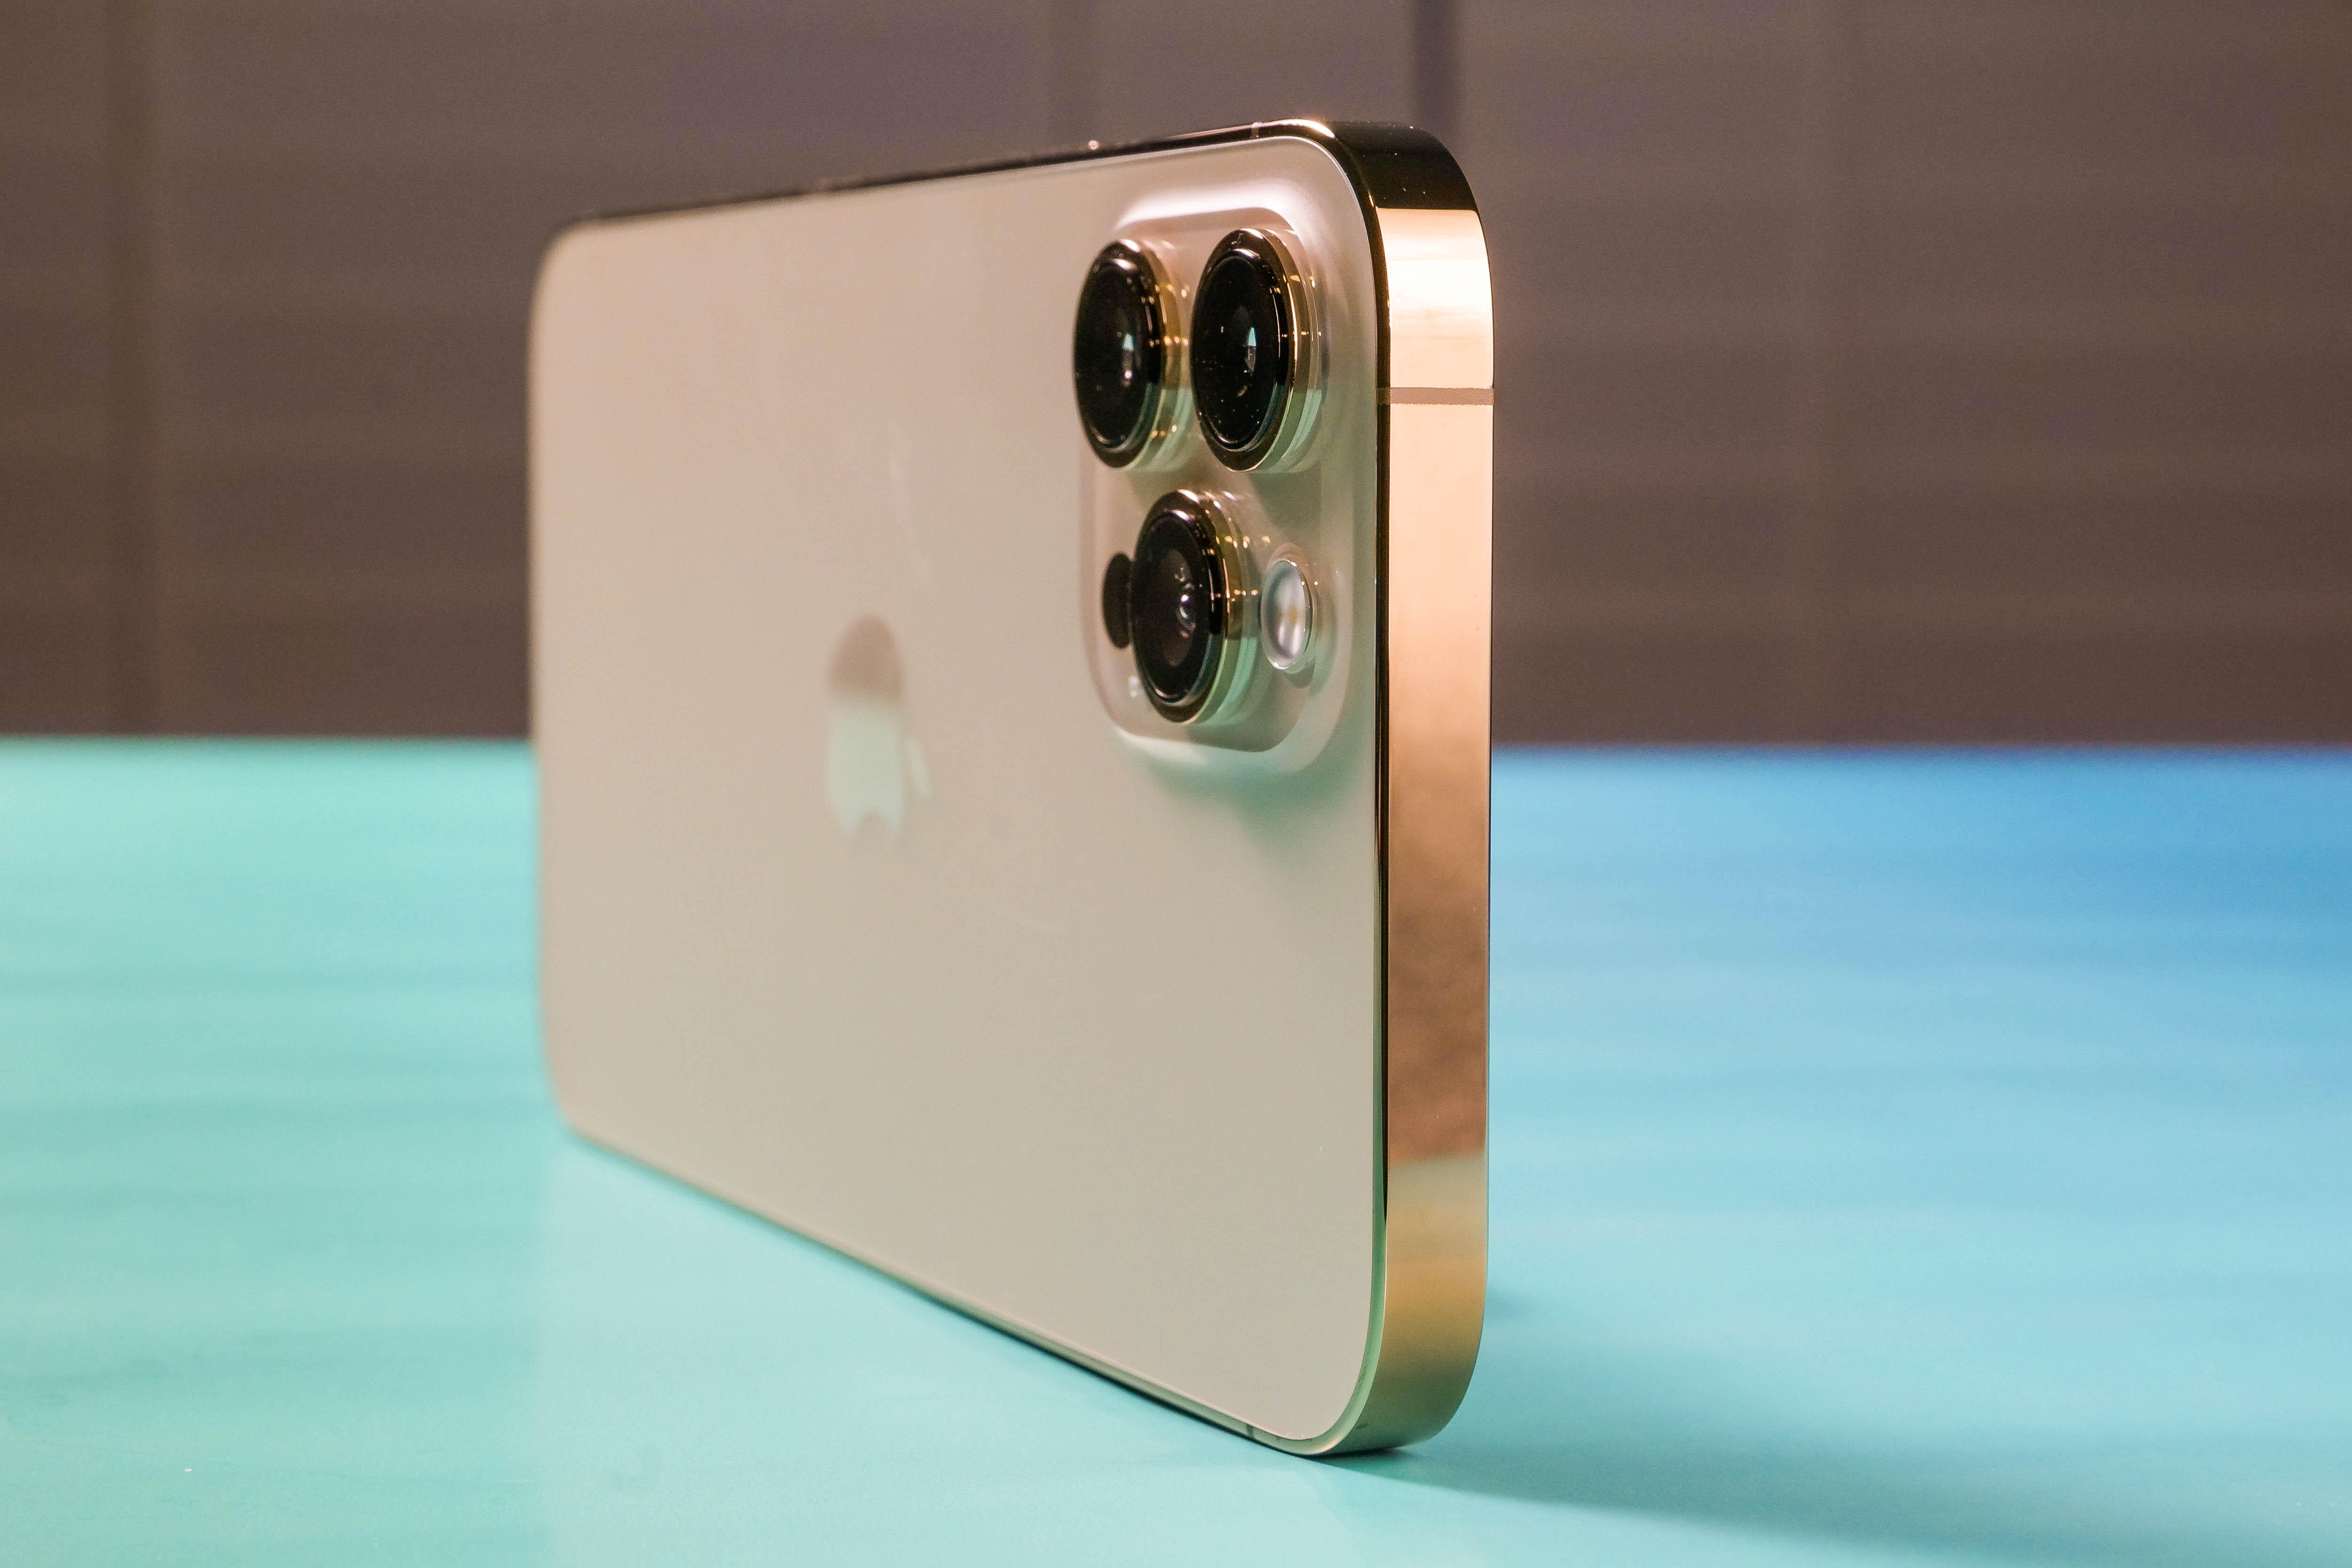 iPhone 12 might be good enough. How to know if you really need the Pro or Pro Max model - CNET